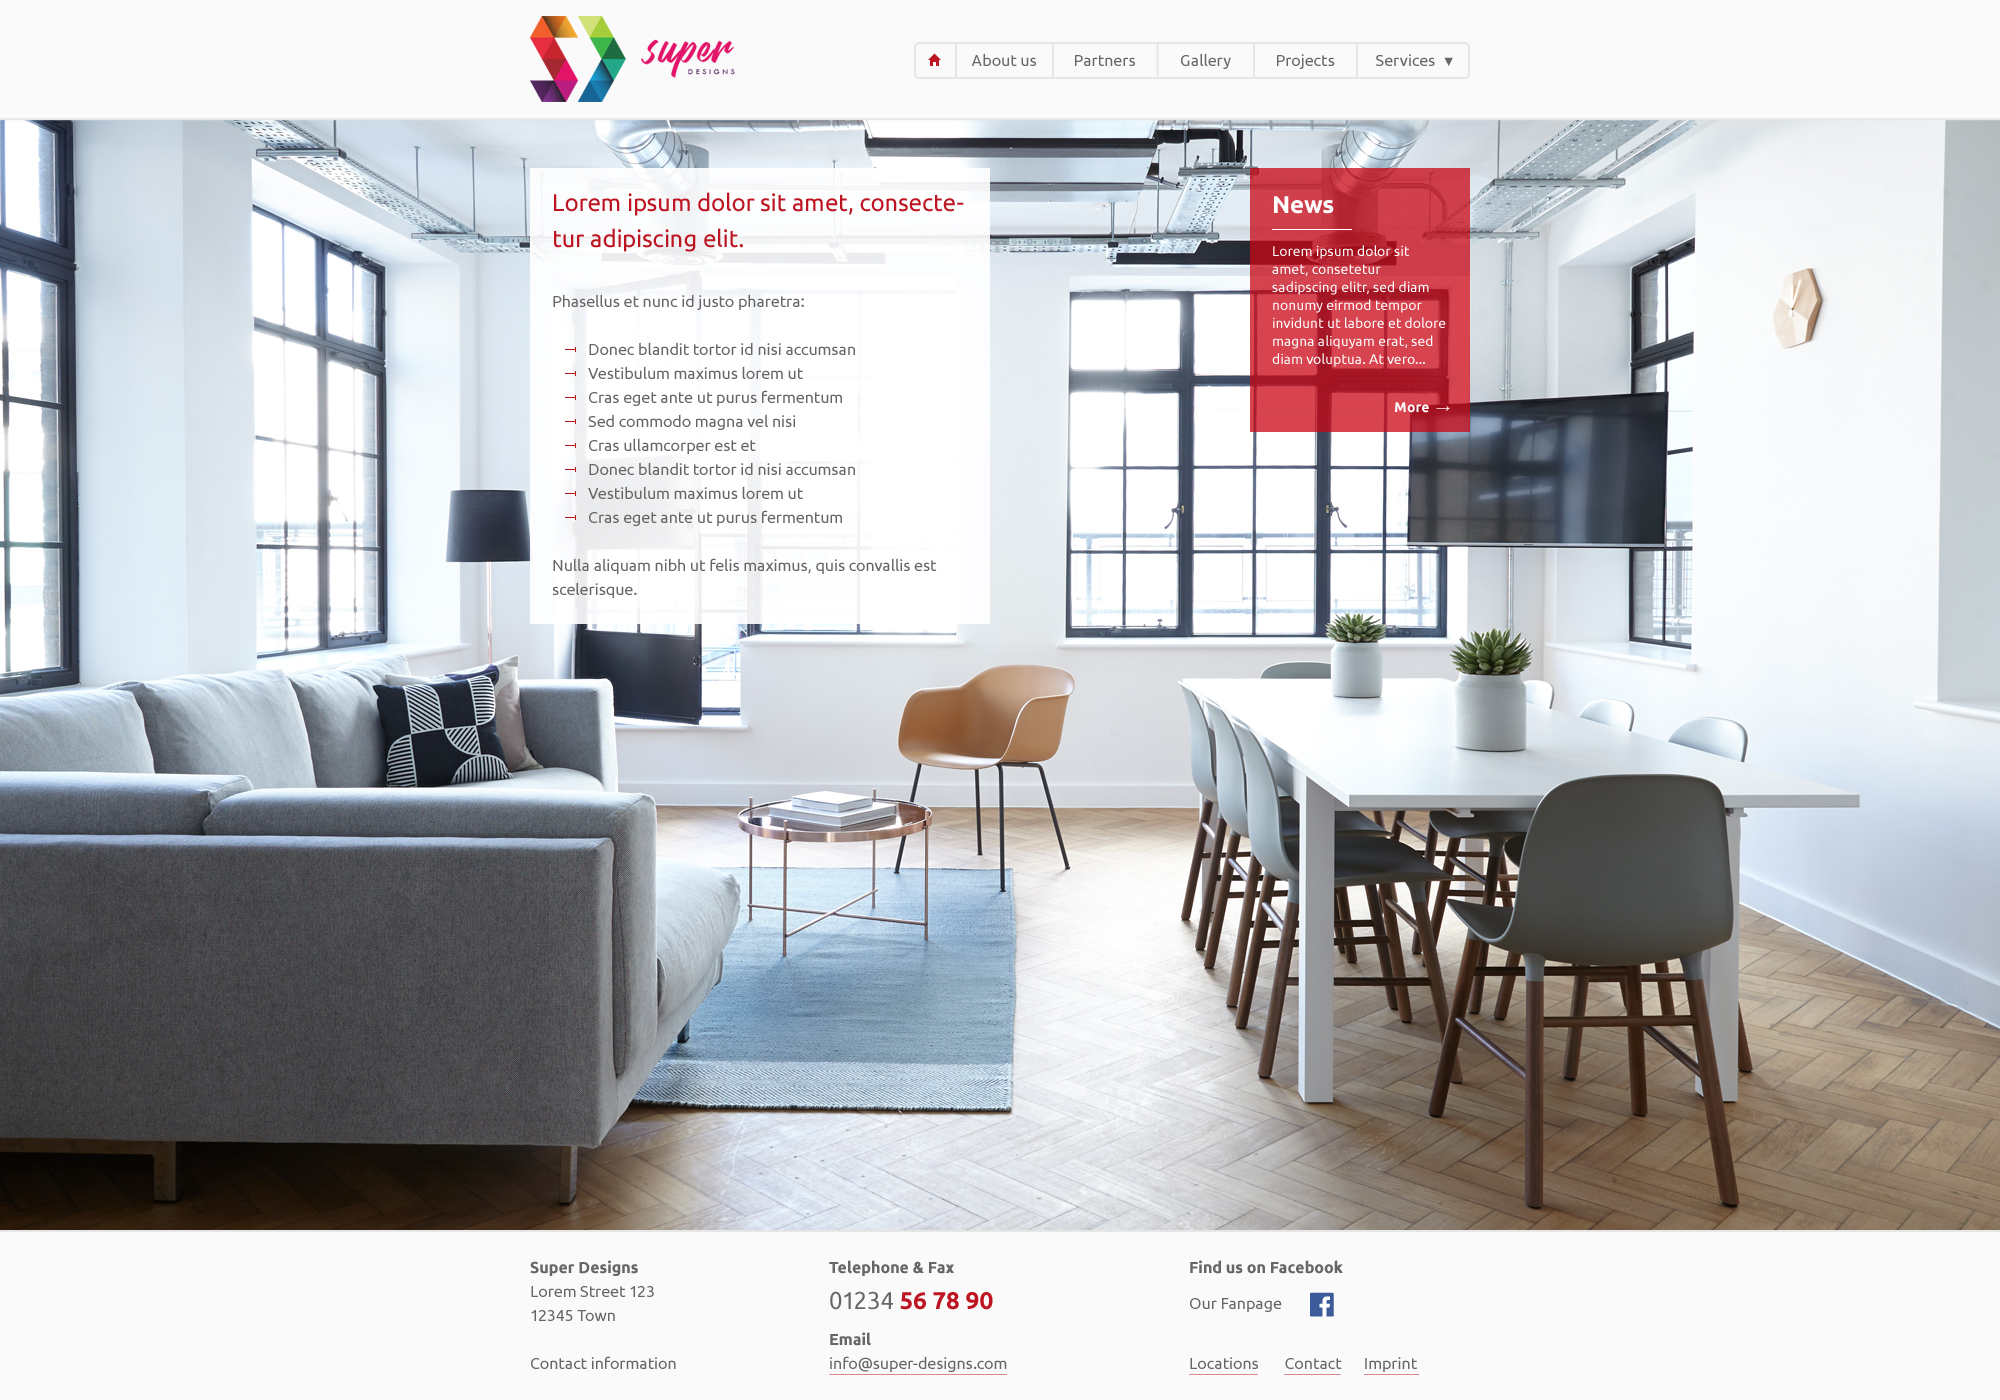 Interior design services psd template for Interior design services